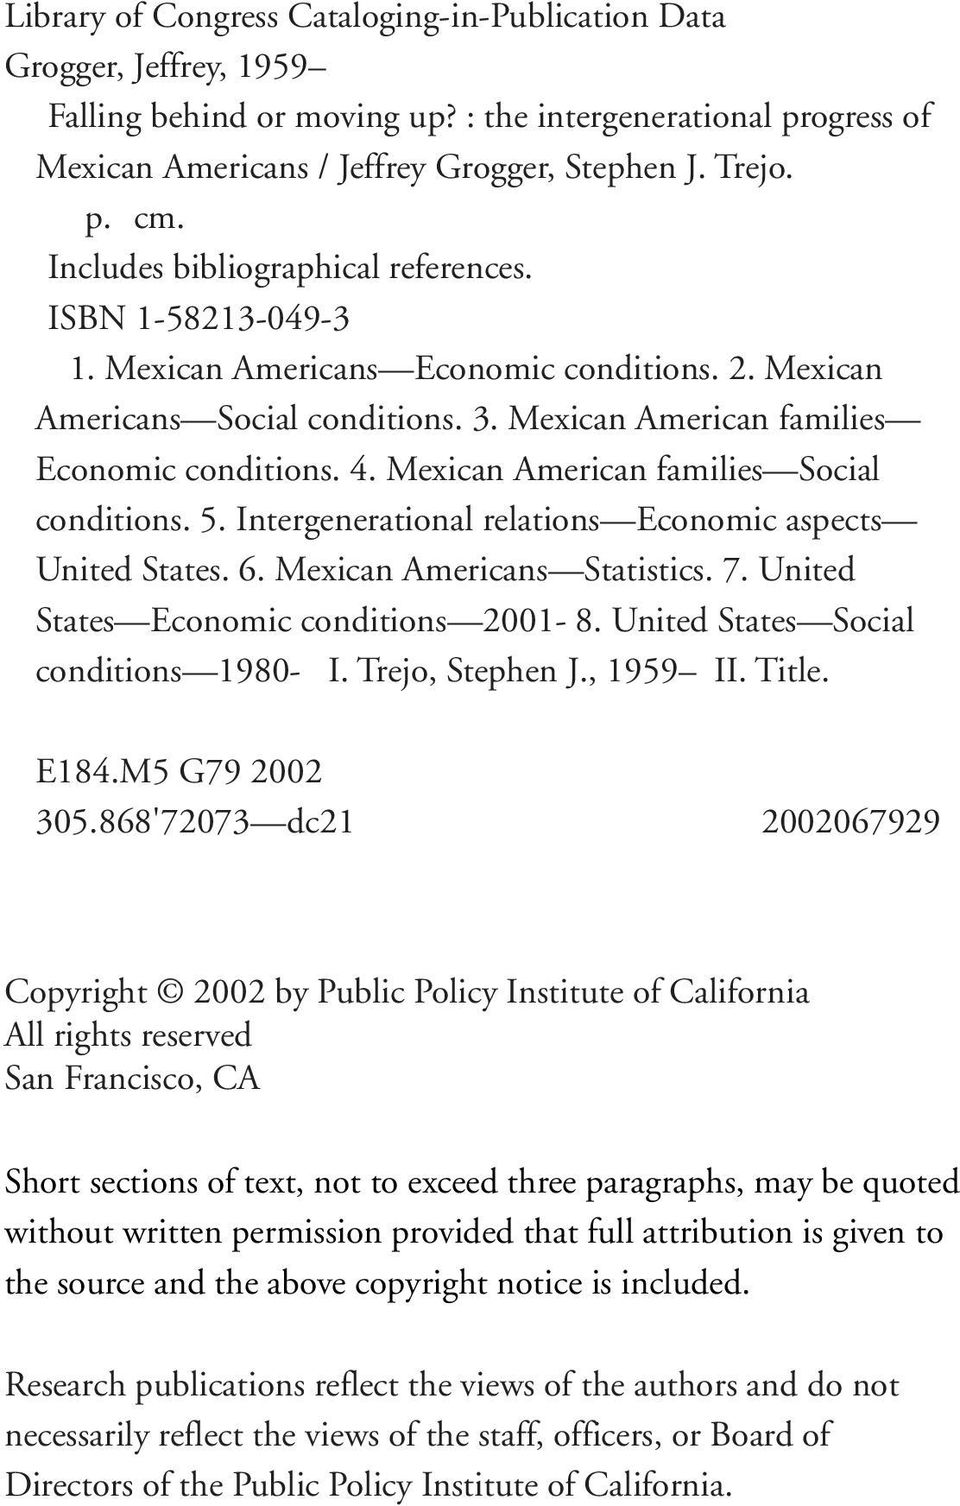 Mexican American families Social conditions. 5. Intergenerational relations Economic aspects United States. 6. Mexican Americans Statistics. 7. United States Economic conditions 2001-8.